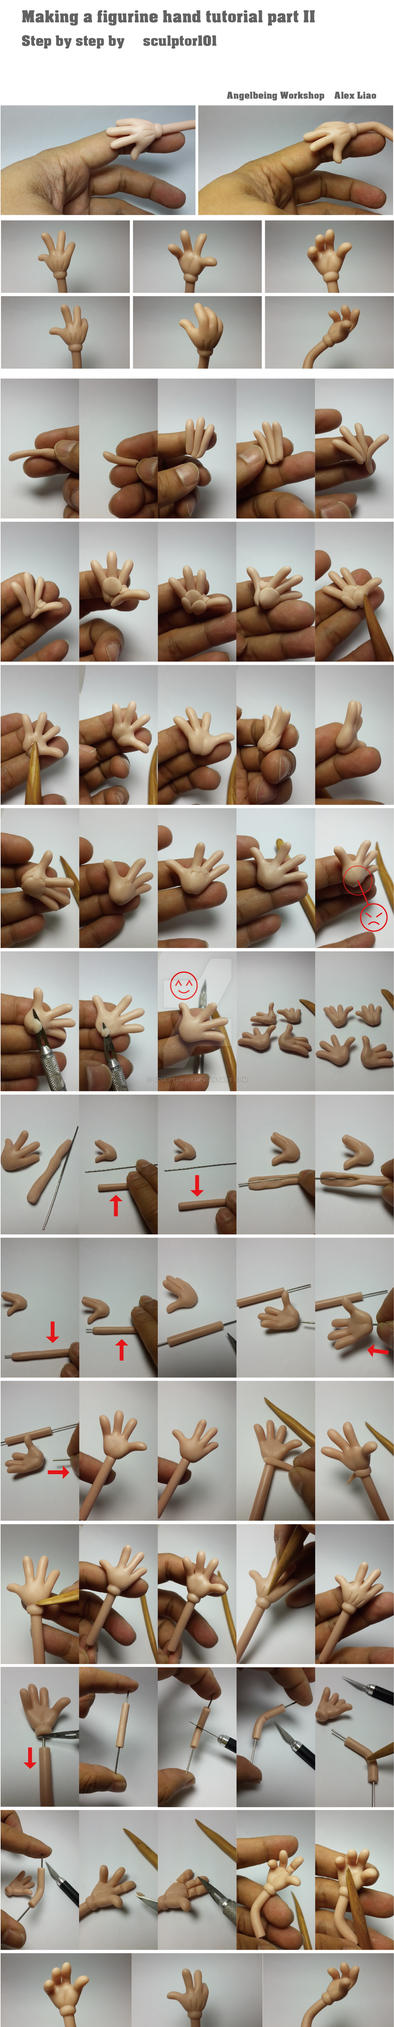 Making figurine hand tutorial part 2 by sculptor101